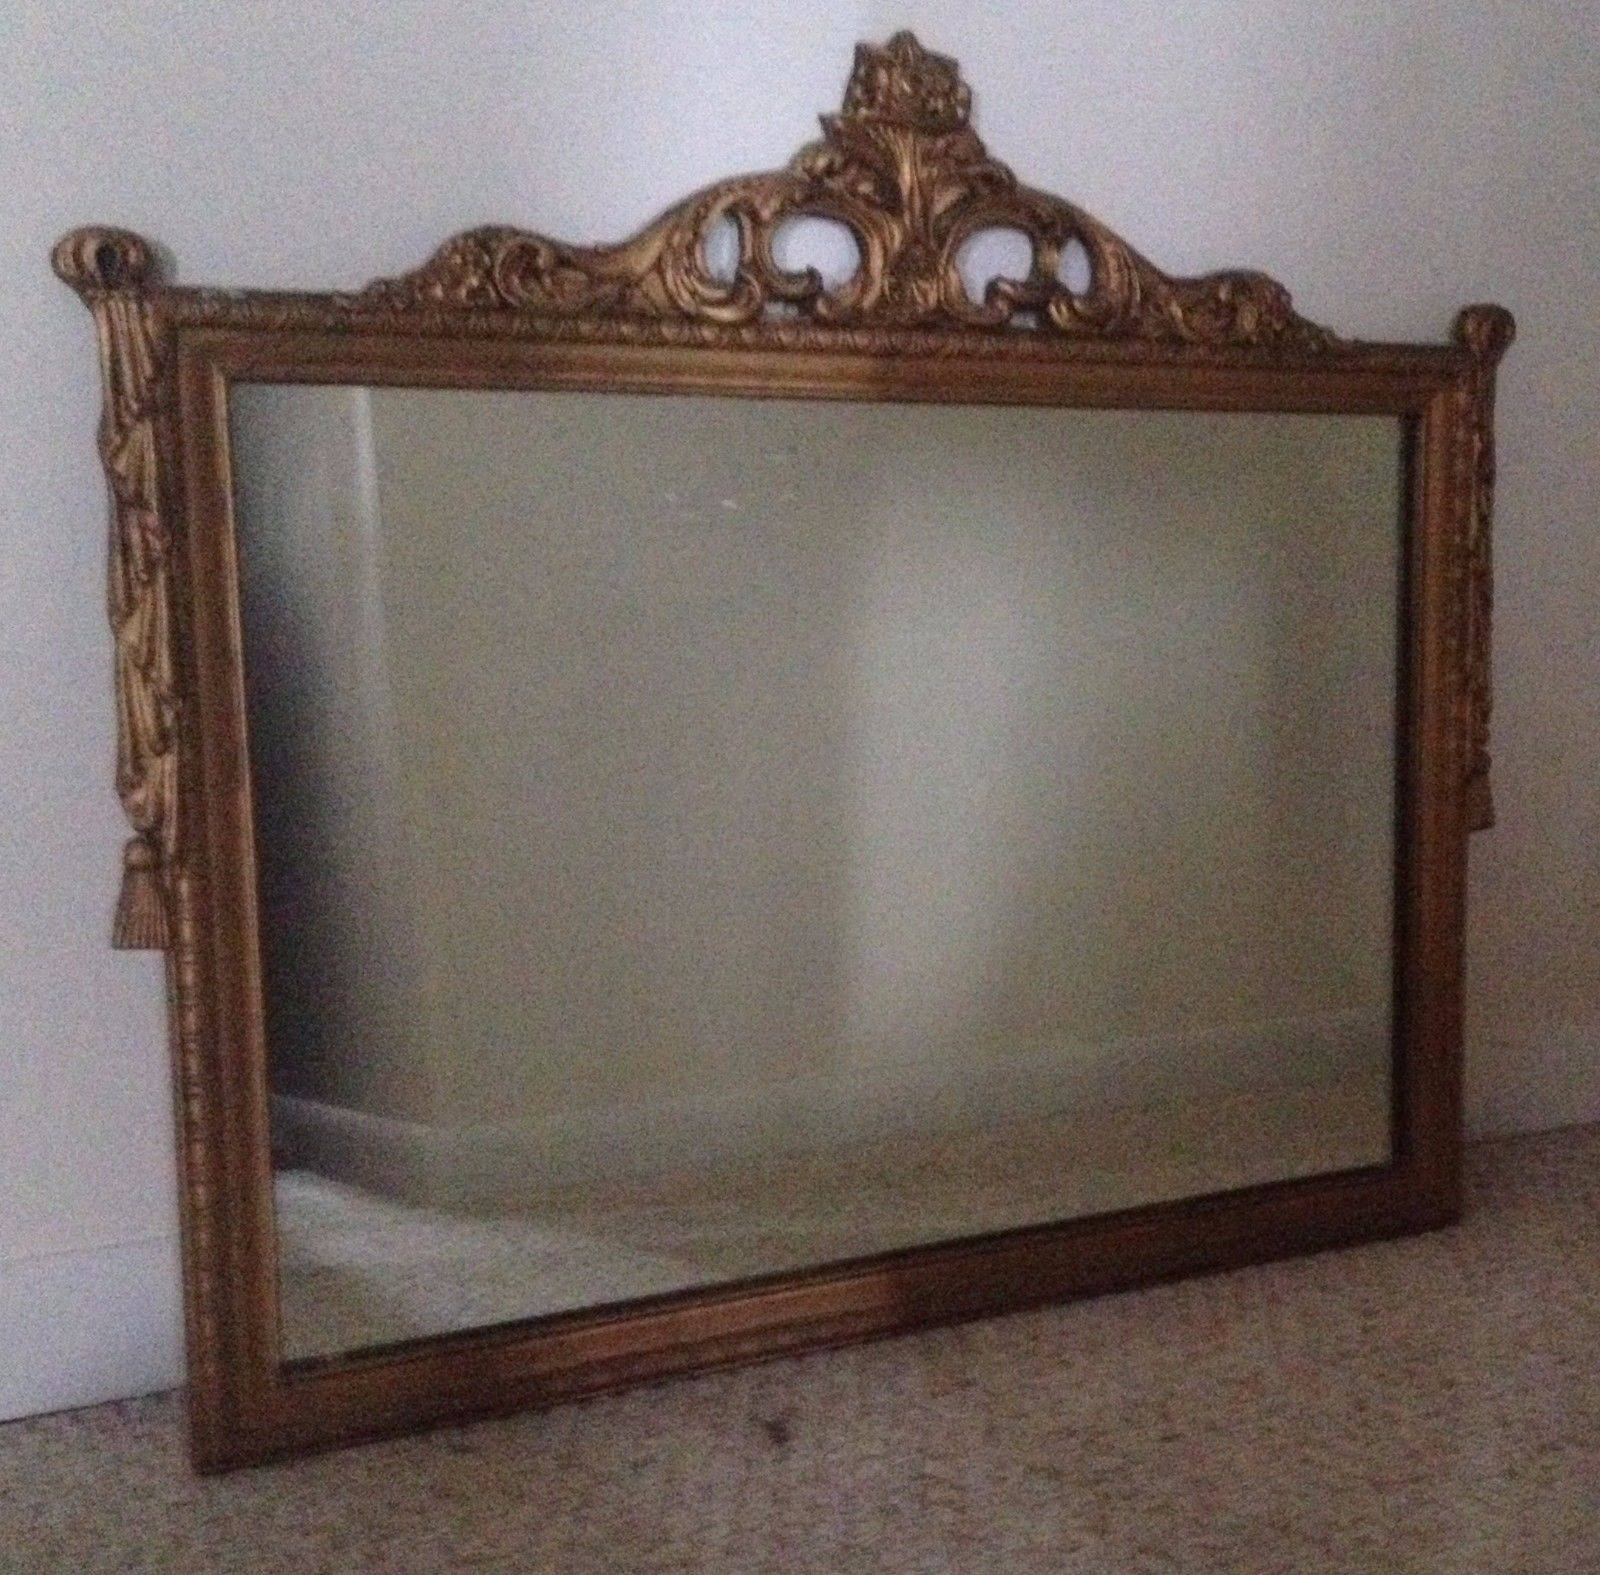 Antique Decorative Carved Wood Gold Gilt Mirror | What's It Worth pertaining to Antique Gilt Mirrors (Image 8 of 25)